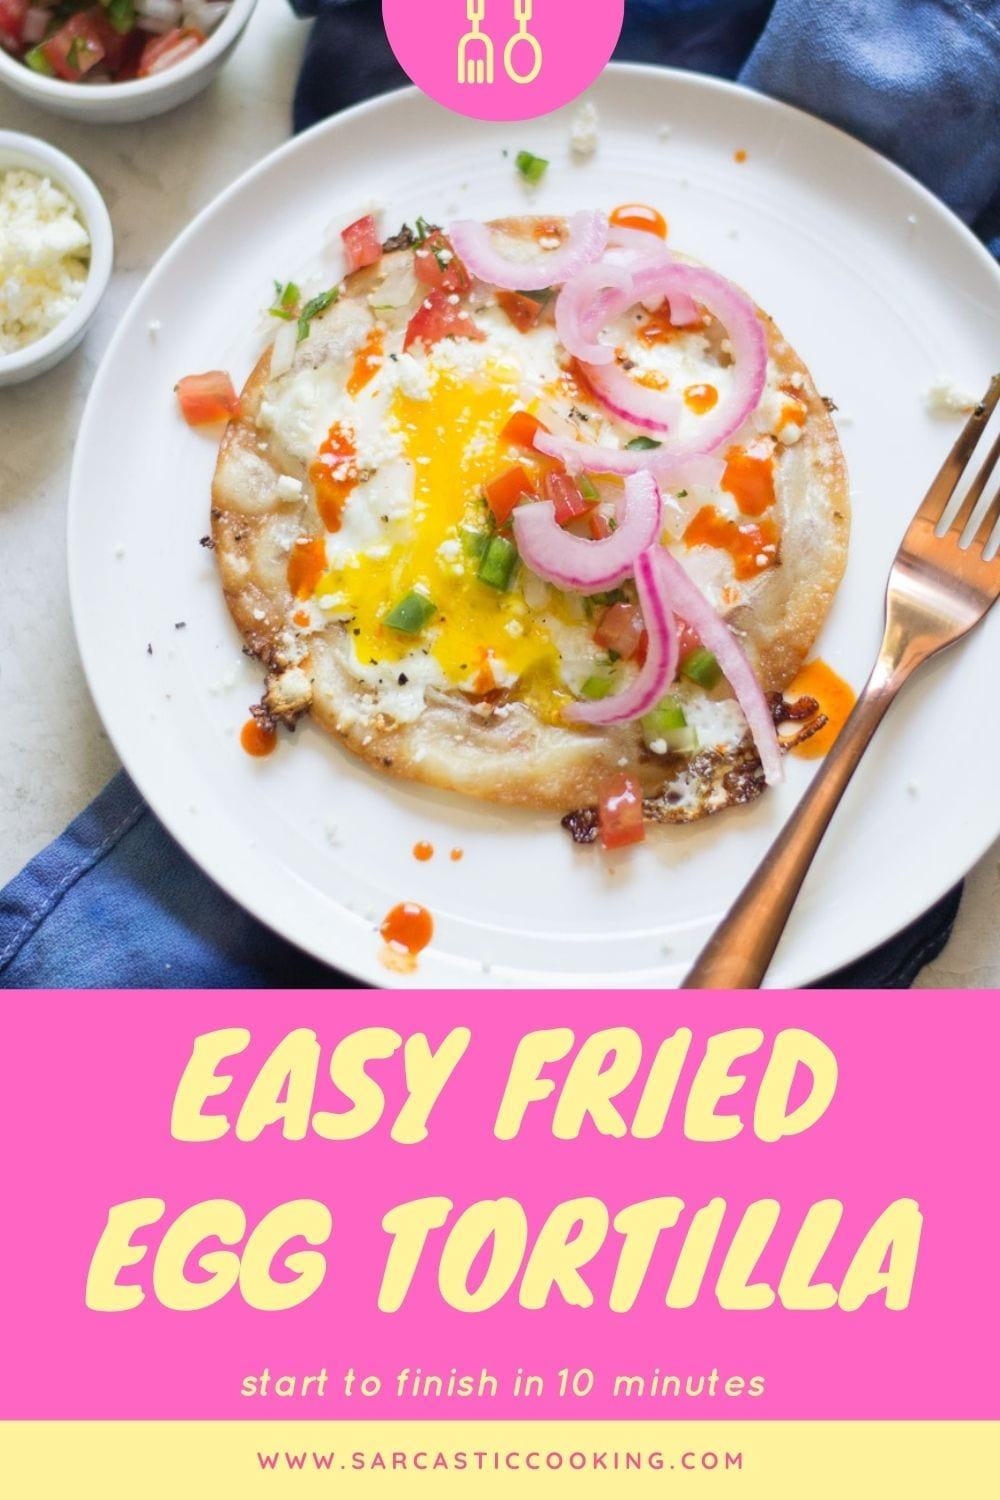 Easy Fried Egg Tortilla (4 ingredients) - Sarcastic Cooking